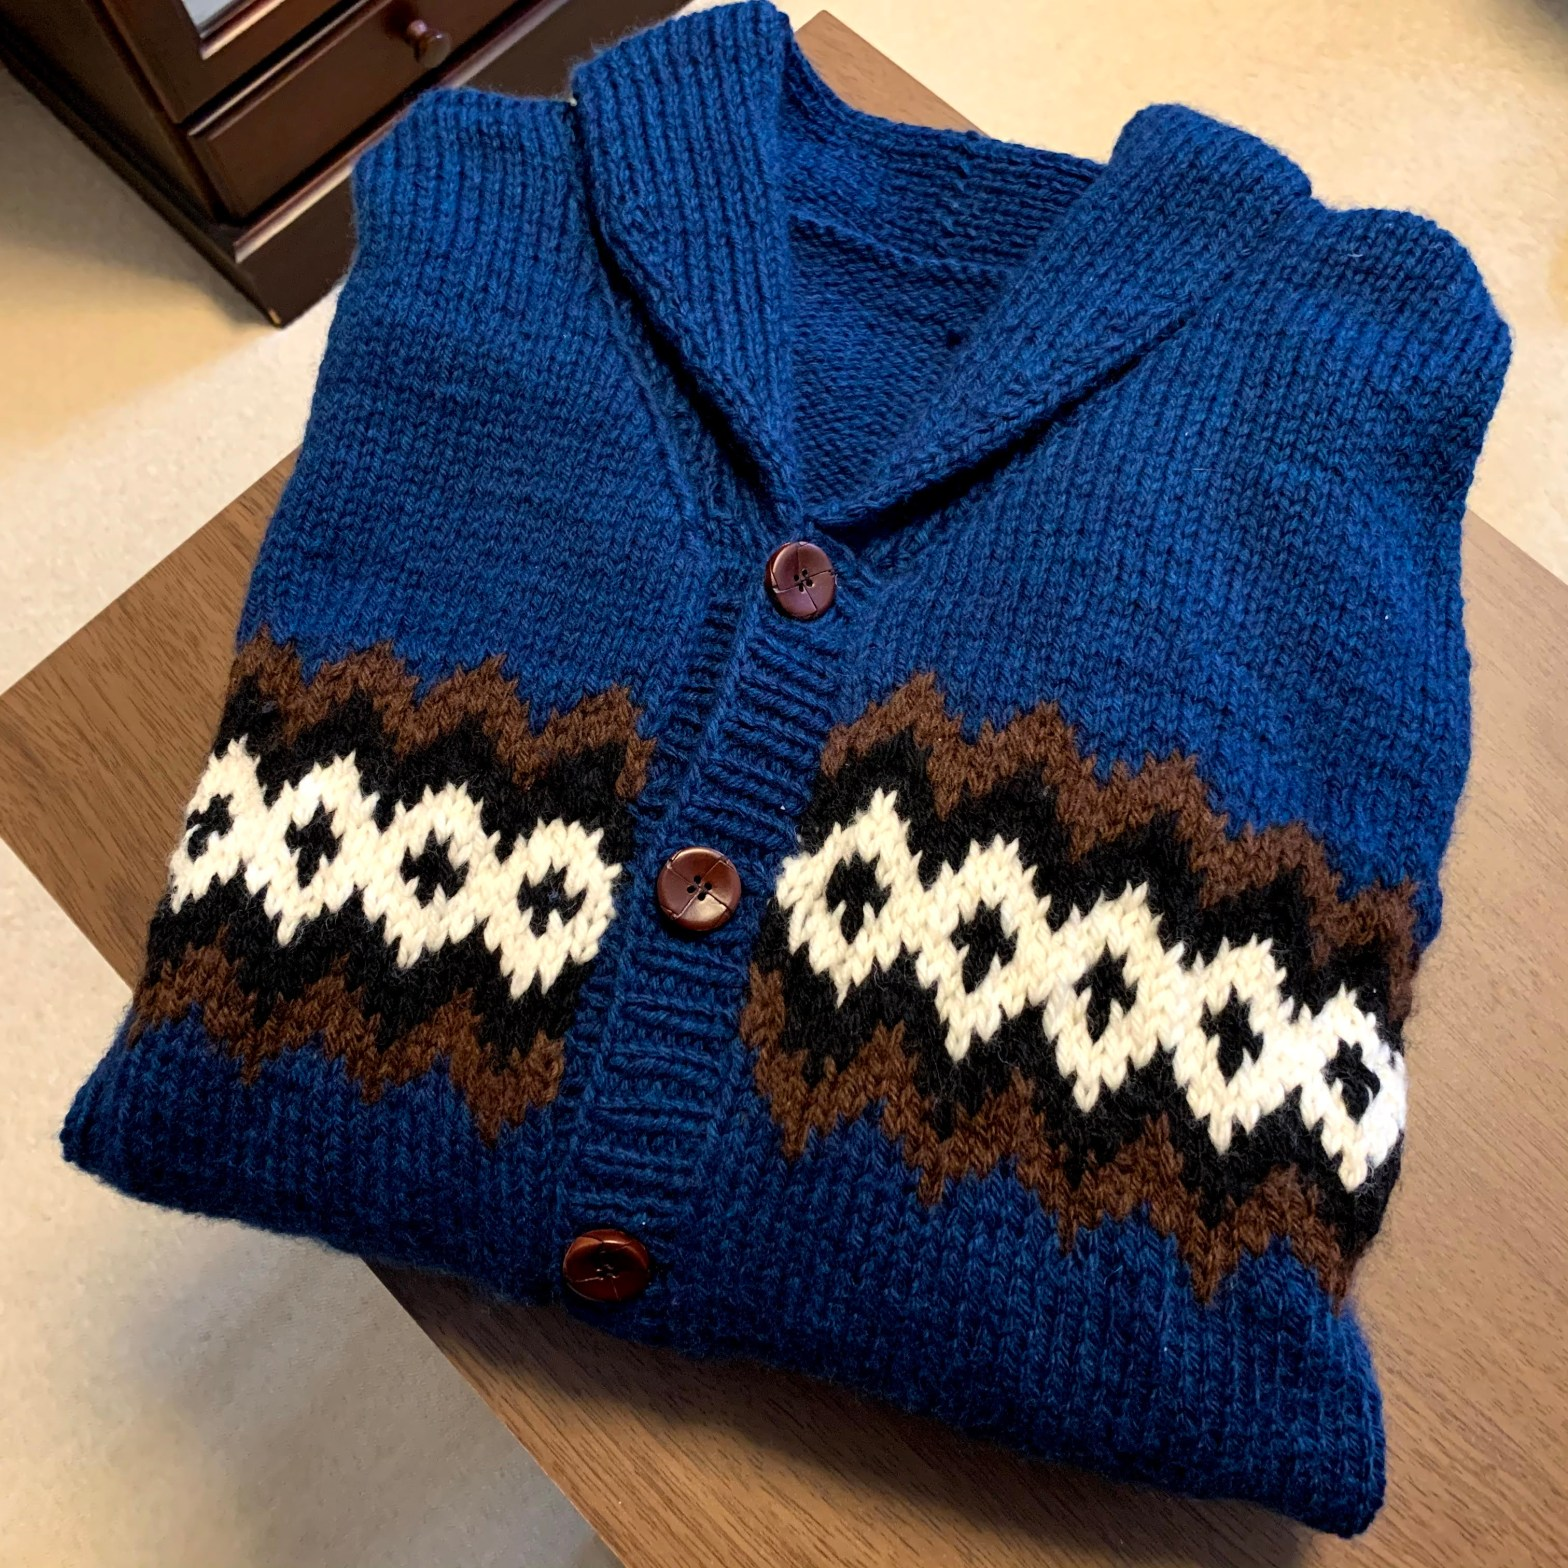 my new blue woolen jumper